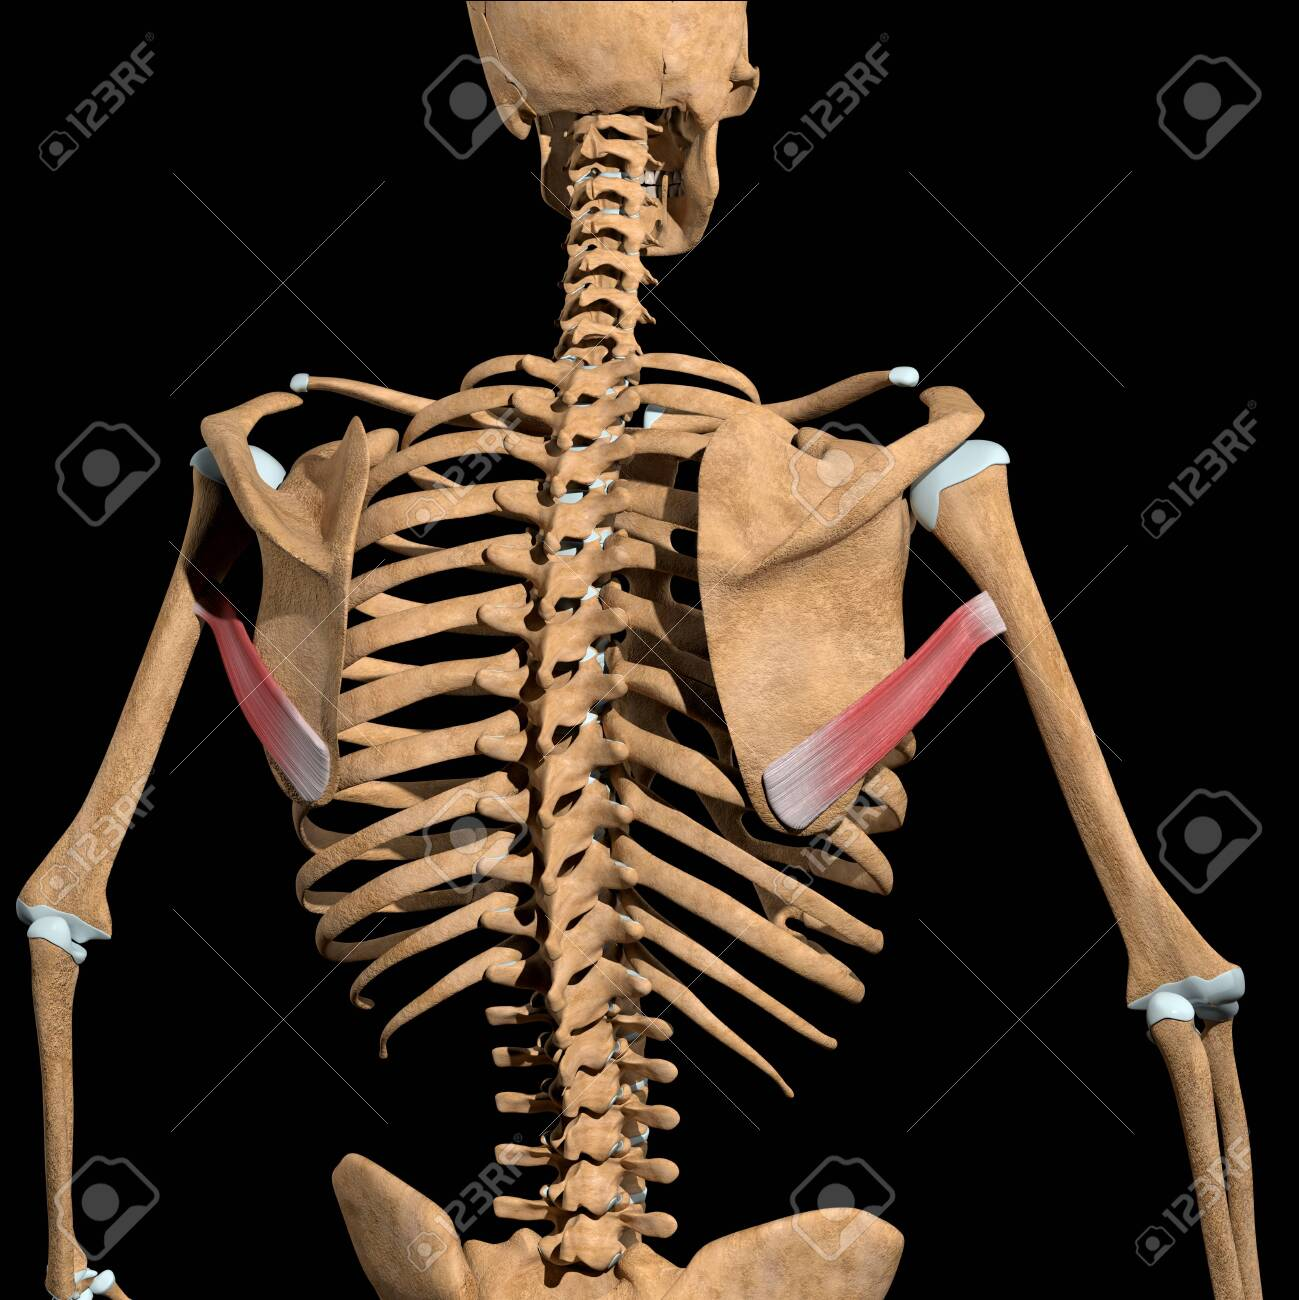 This 3d illustration shows the teres major muscles on skeleton - 141625443